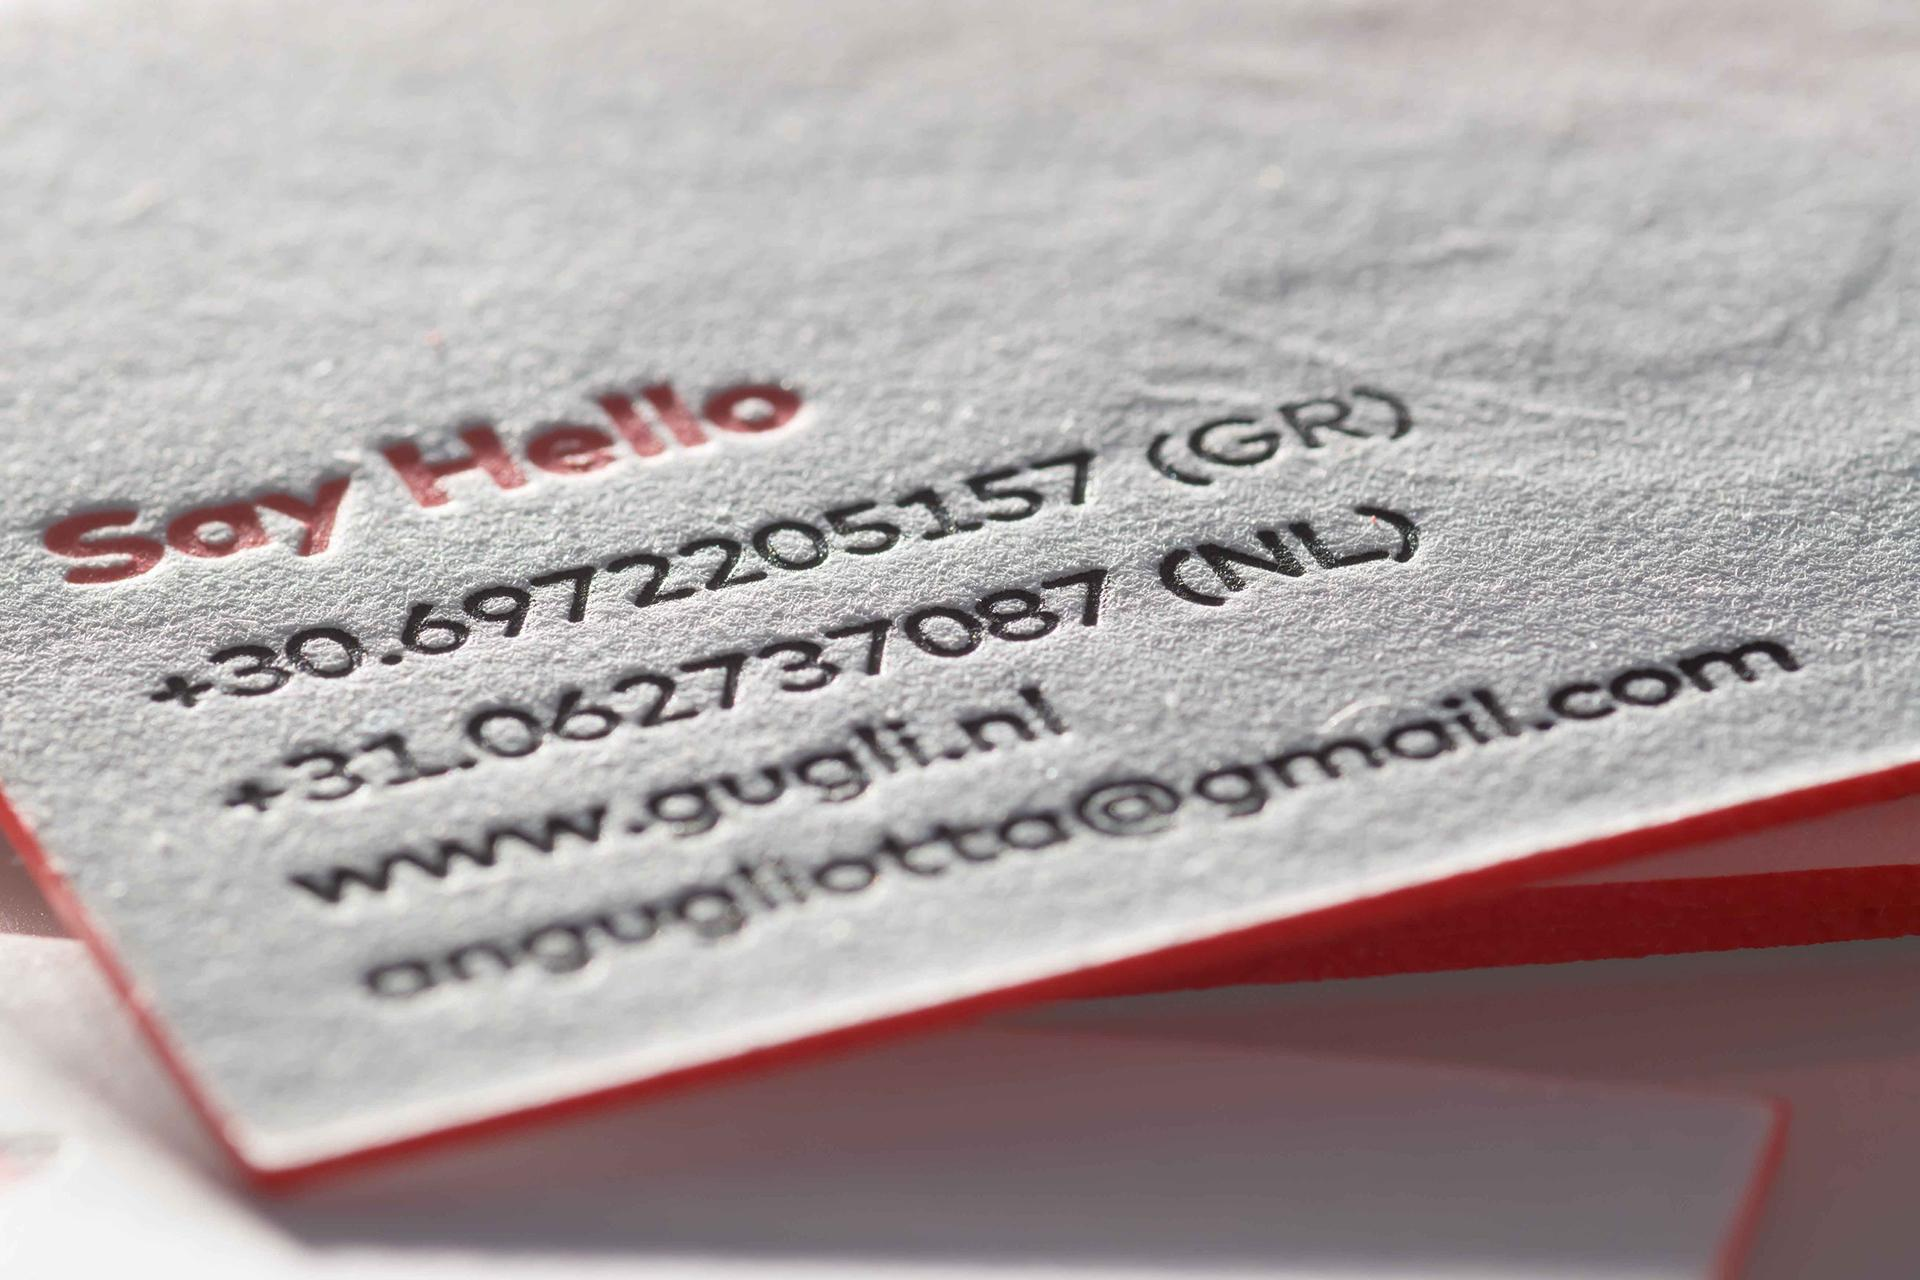 Andreas Gugliotta business card